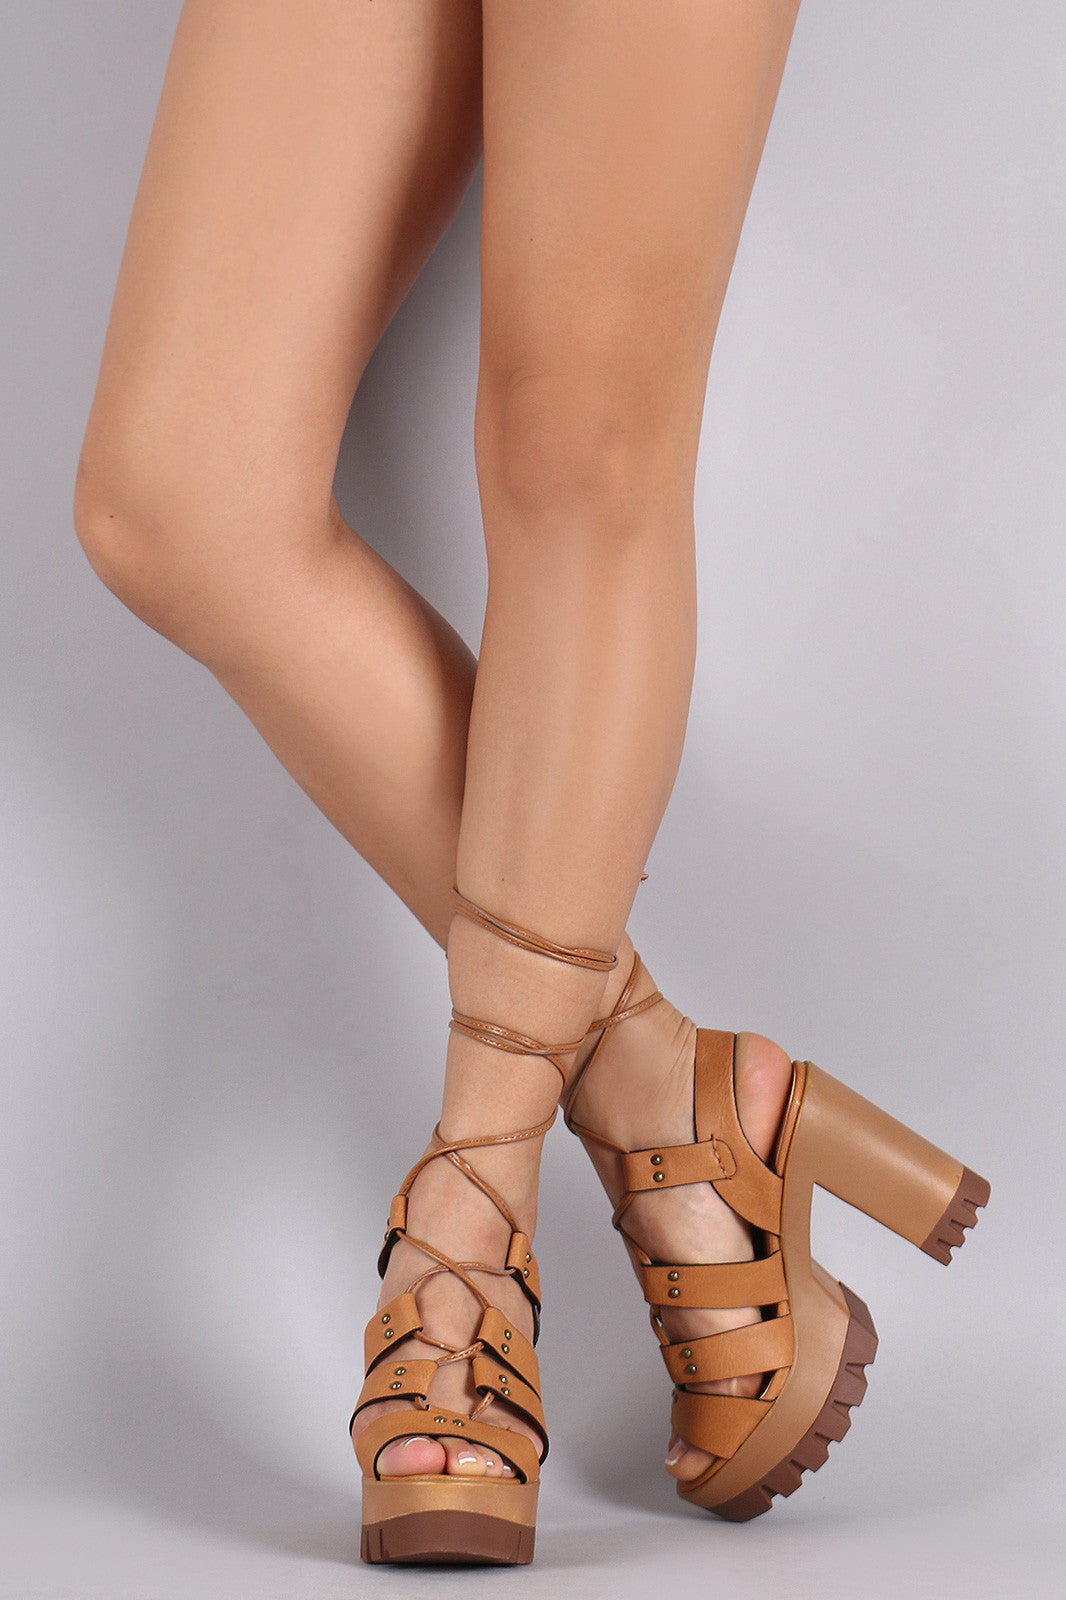 Wild Diva Lounge Strappy Lace-Up Lug Sole Platform Heel - Thick 'N' Curvy Shop - 1